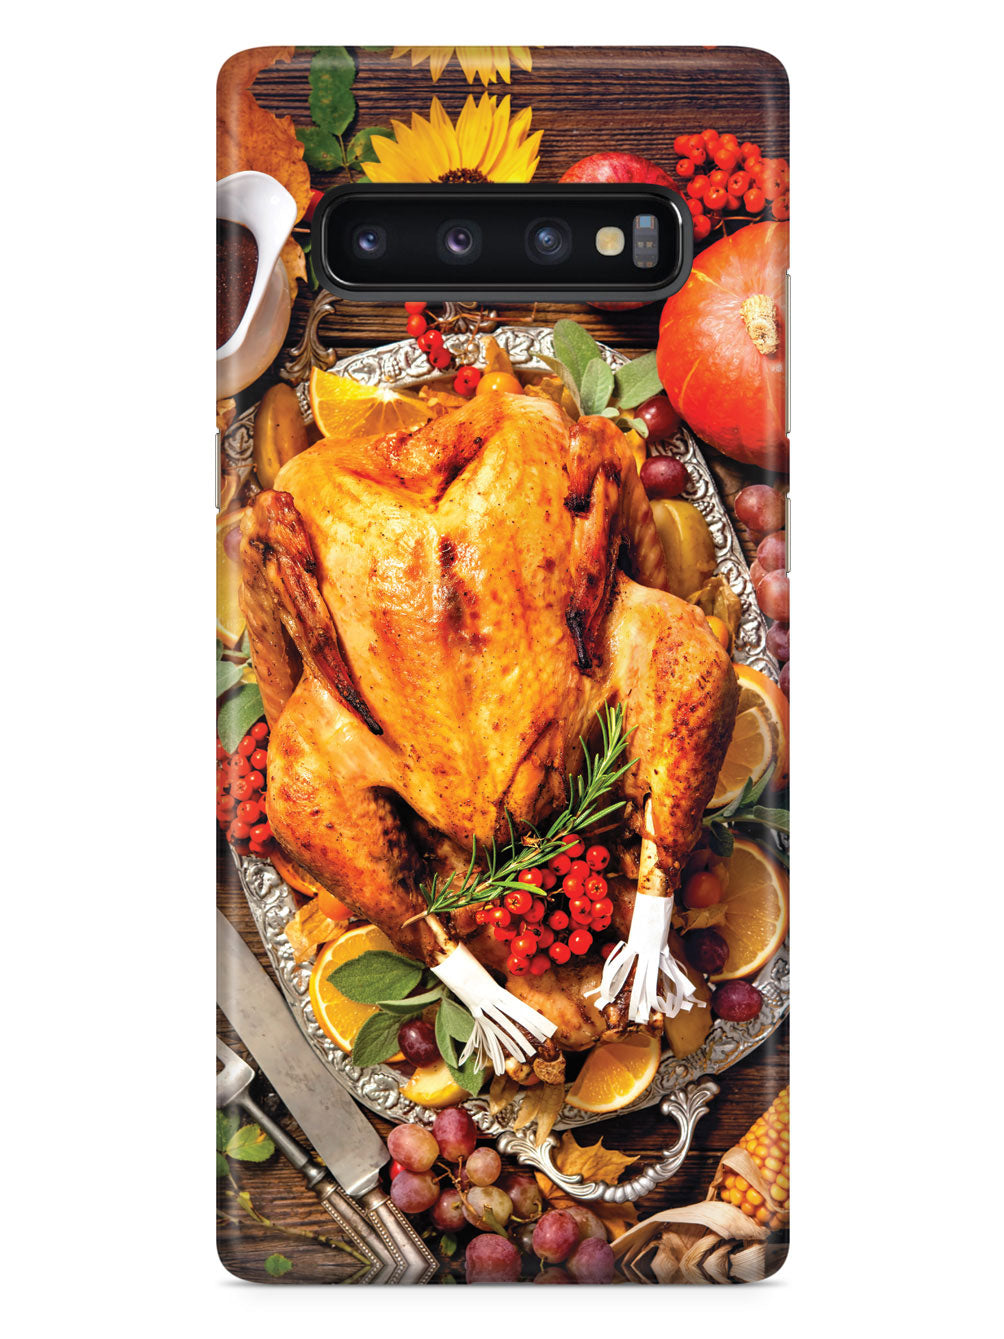 Thanksgiving Dinner - Texturized - Black Case